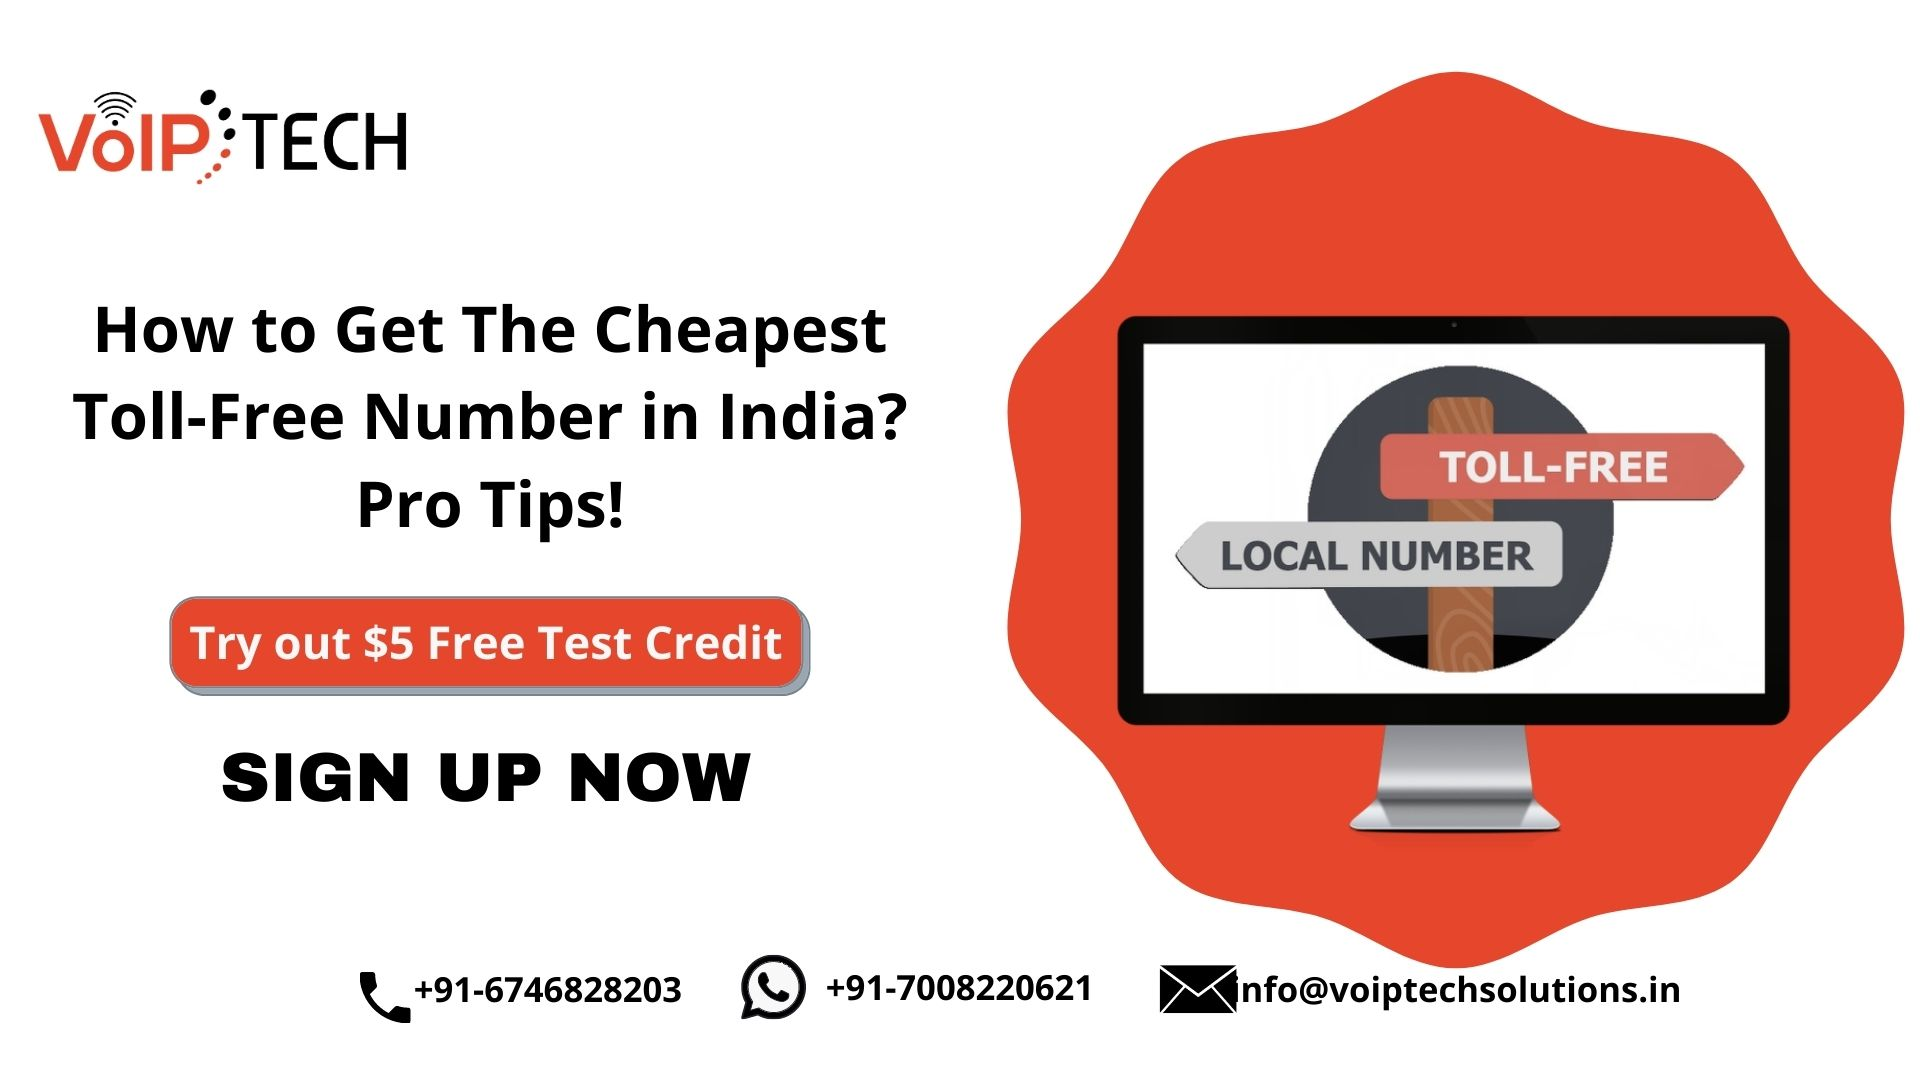 Cheapest Toll-Free Number in India, How to Get The Cheapest Toll-Free Number in India? Pro Tips!, VoIP tech solutions, vici dialer, virtual number, Voip Providers, voip services in india, best sip provider, business voip providers, VoIP Phone Numbers, voip minutes provider, top voip providers, voip minutes, International VoIP Provider